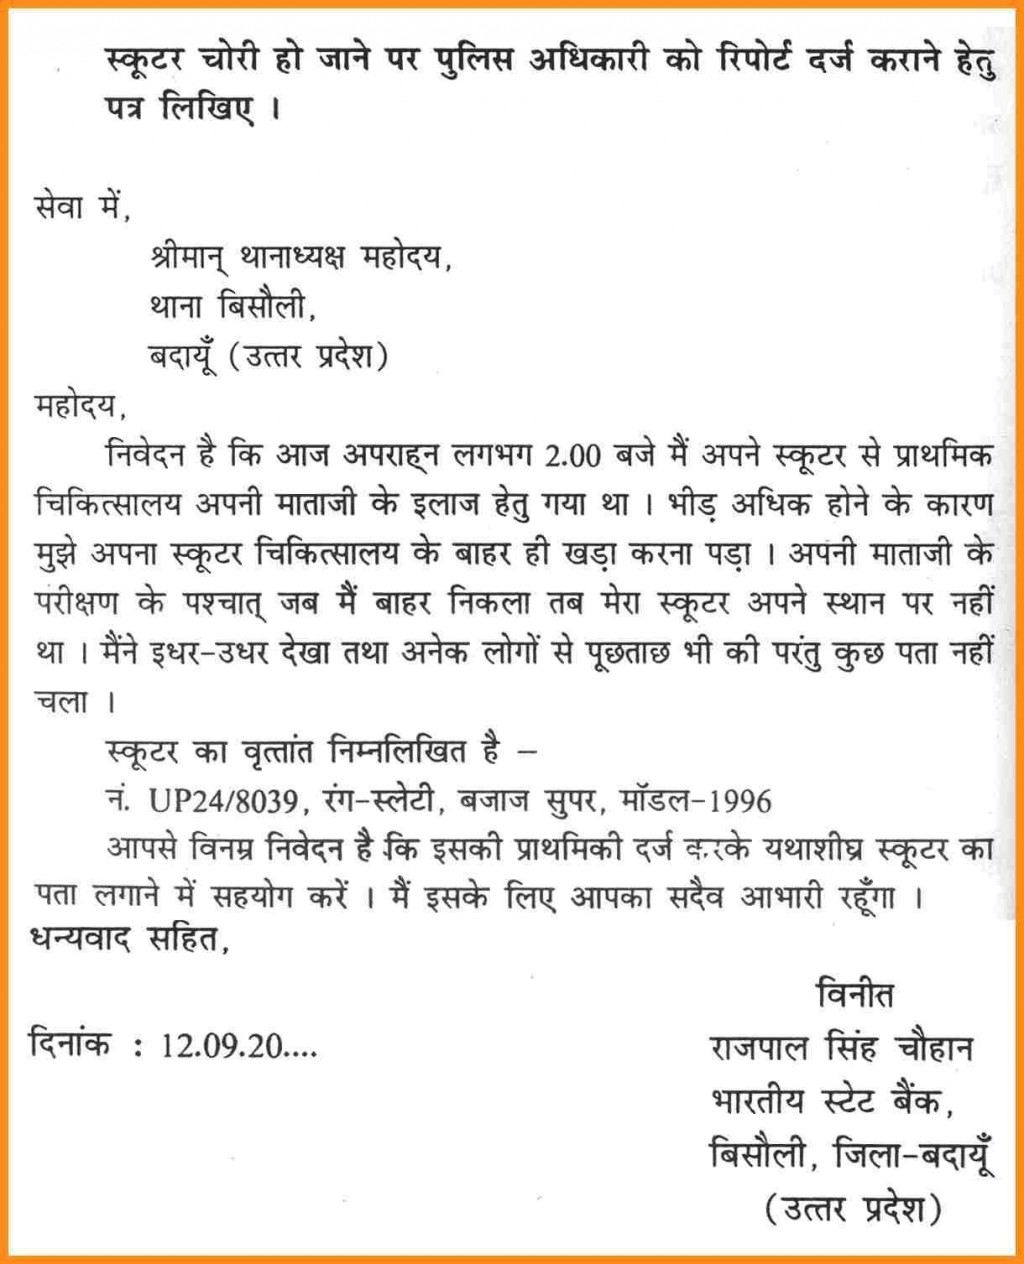 007 Unbelievable Hindi Letter Writing Format Pdf Free Download Inspiration Large